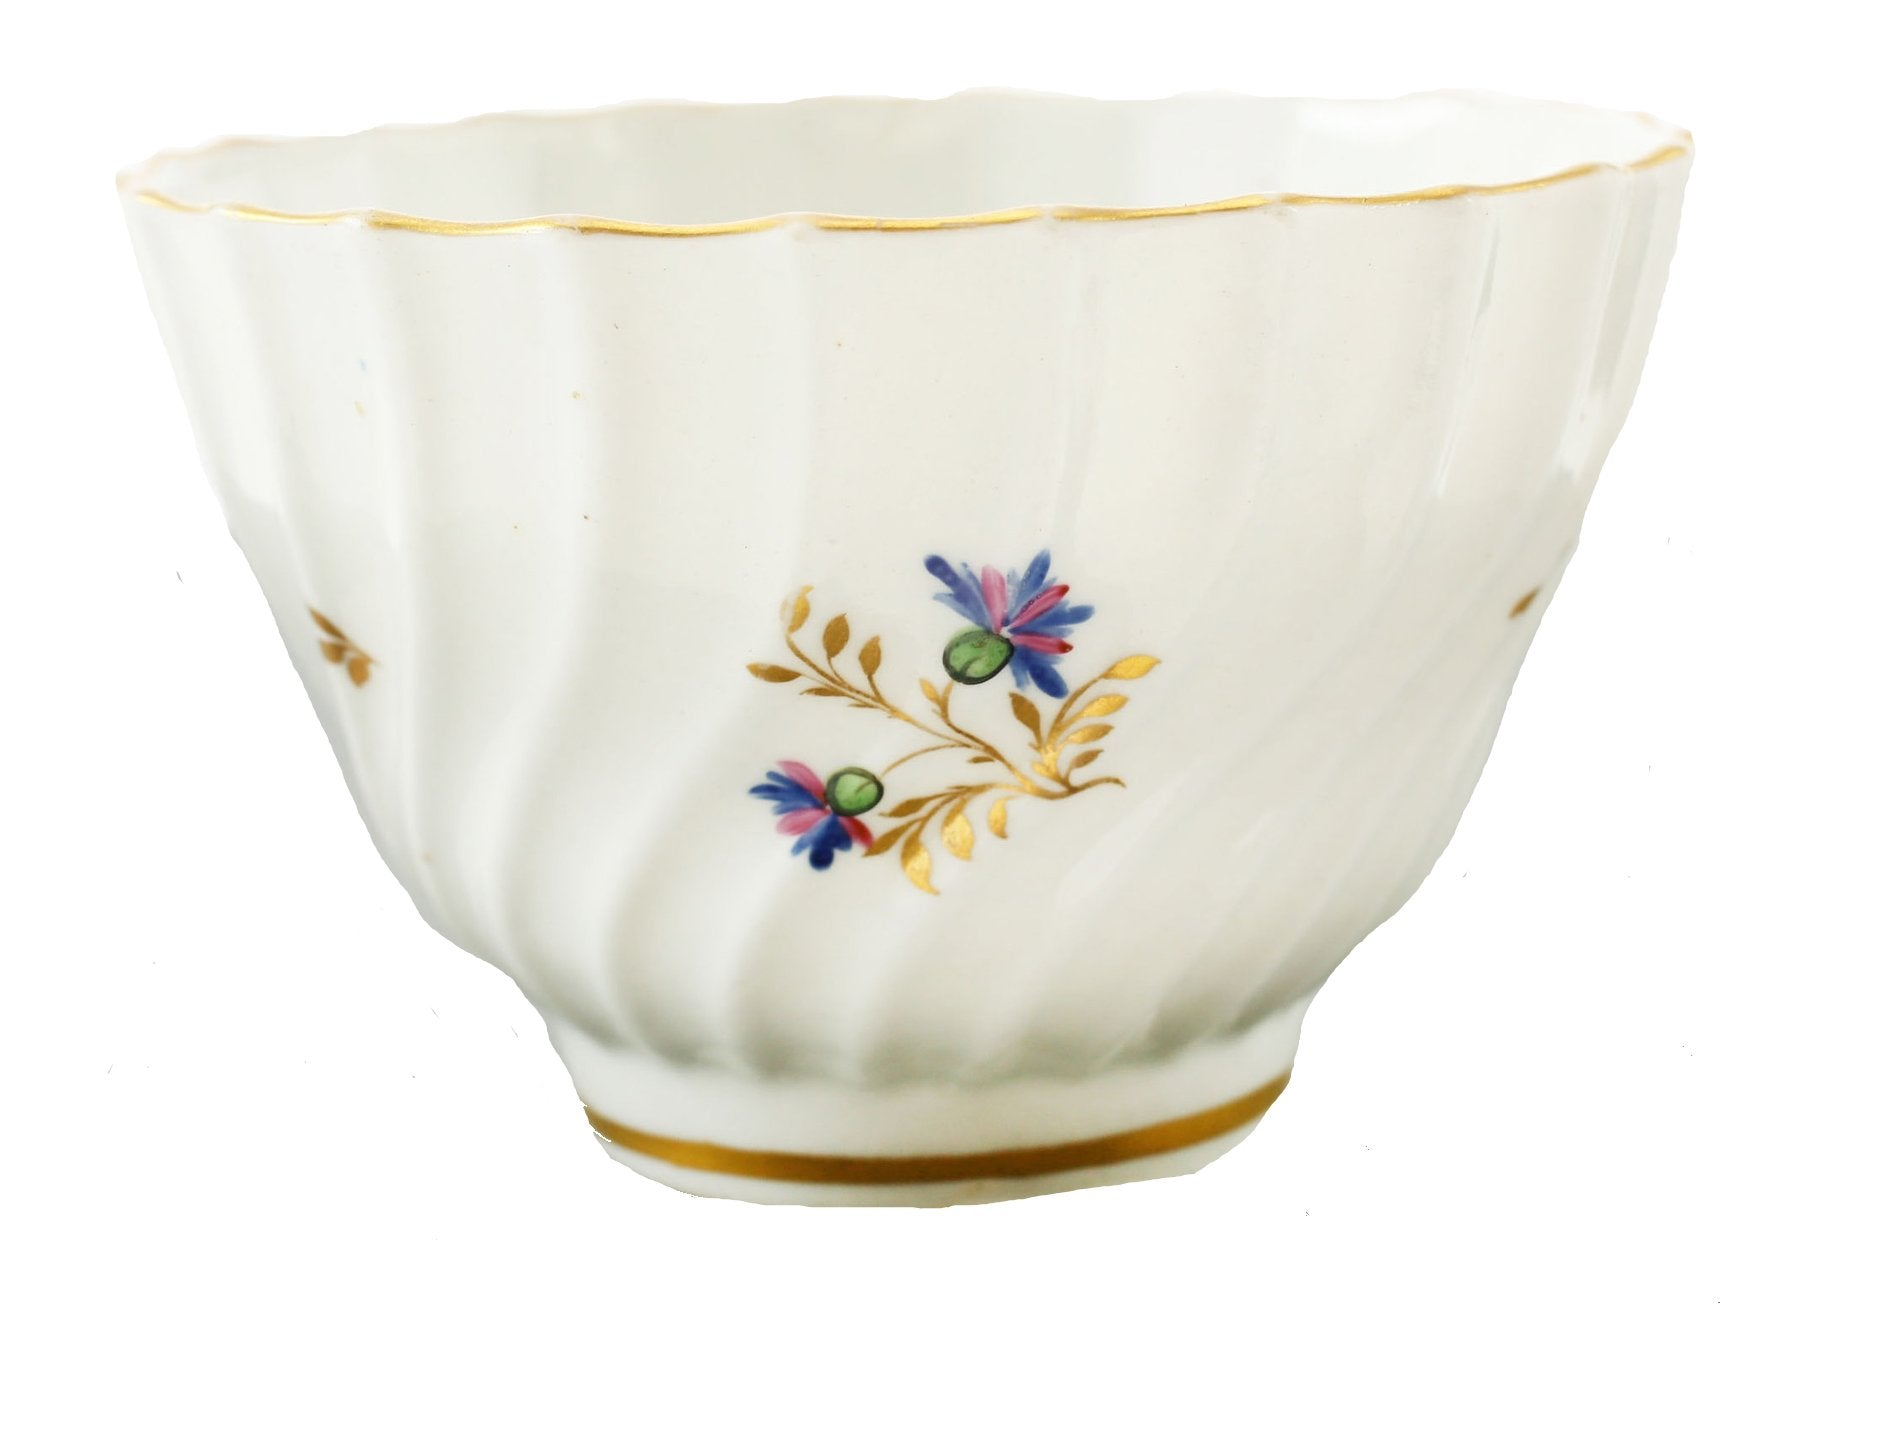 ENGLISH PORCELAIN TEA BOWL. C.1804-13 - Fagan Arms